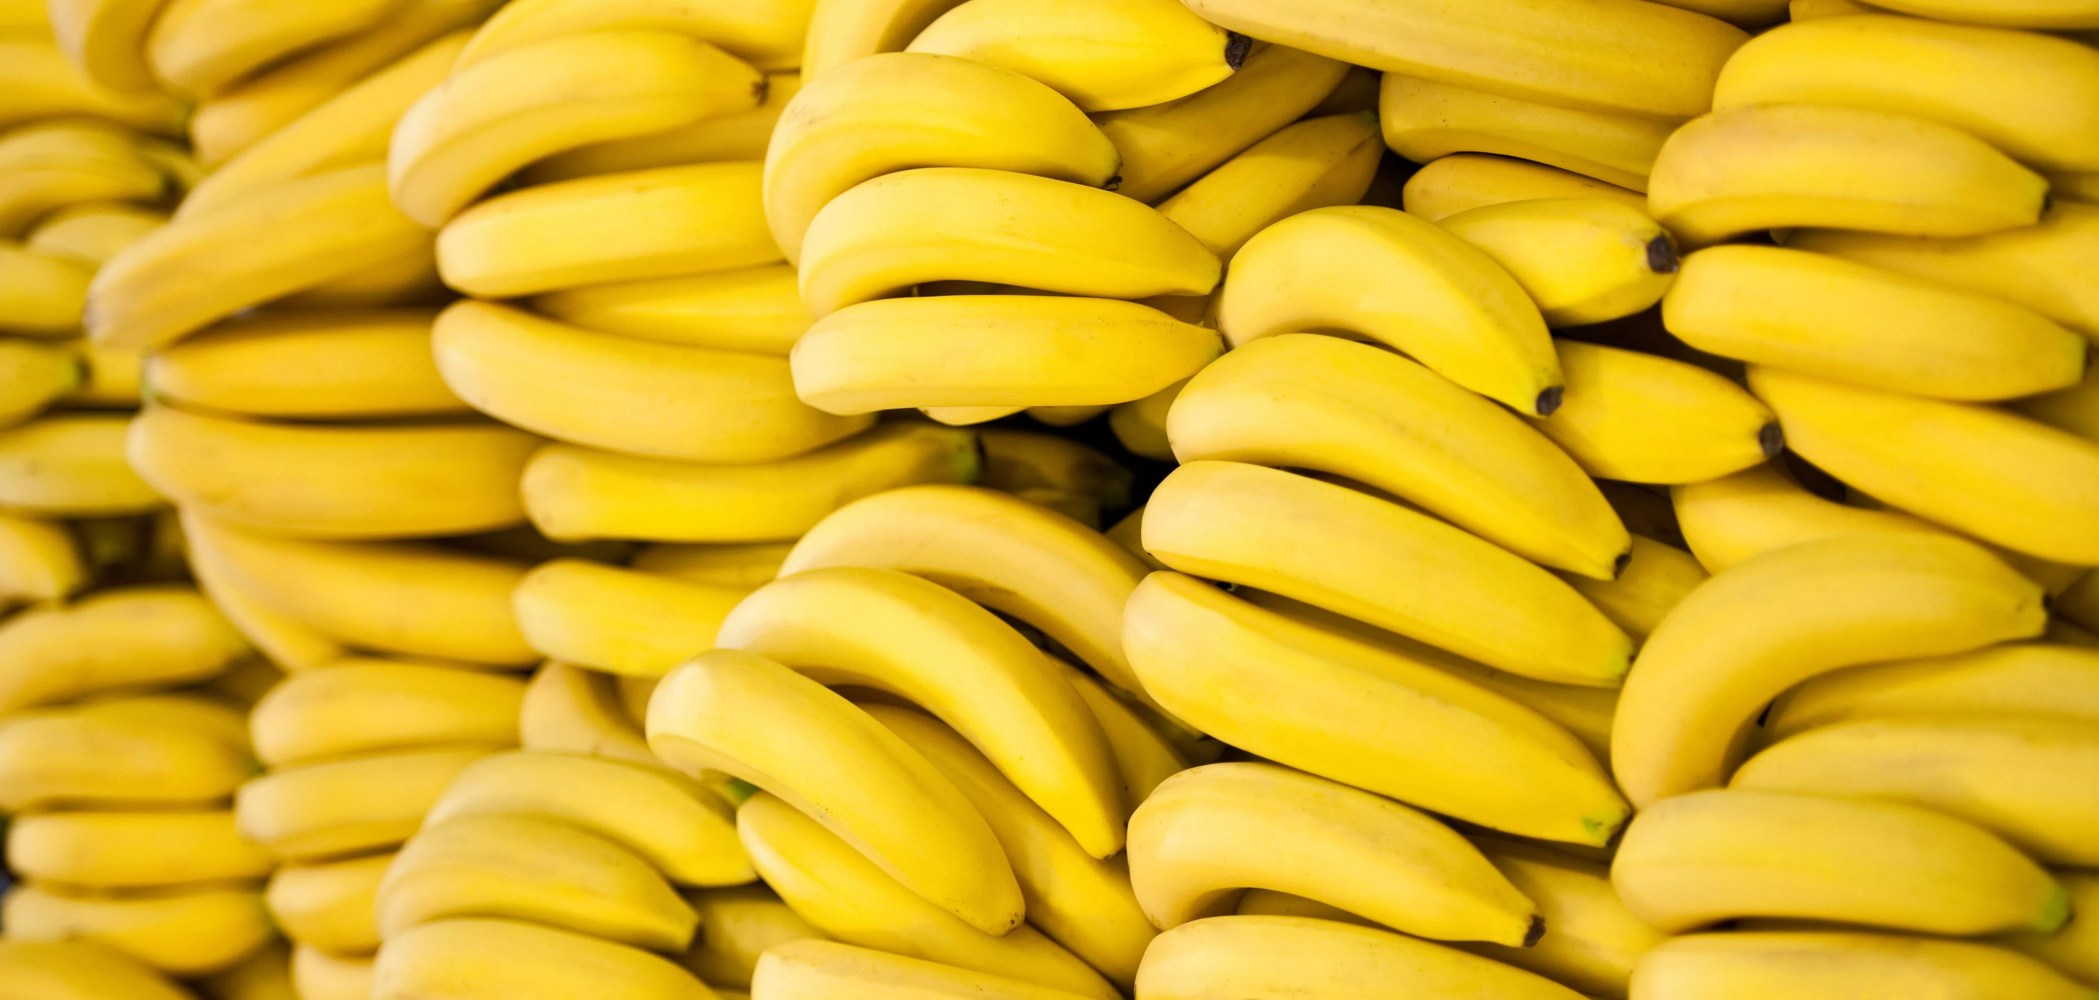 6 Reasons You Should Switch To Banana Flour.